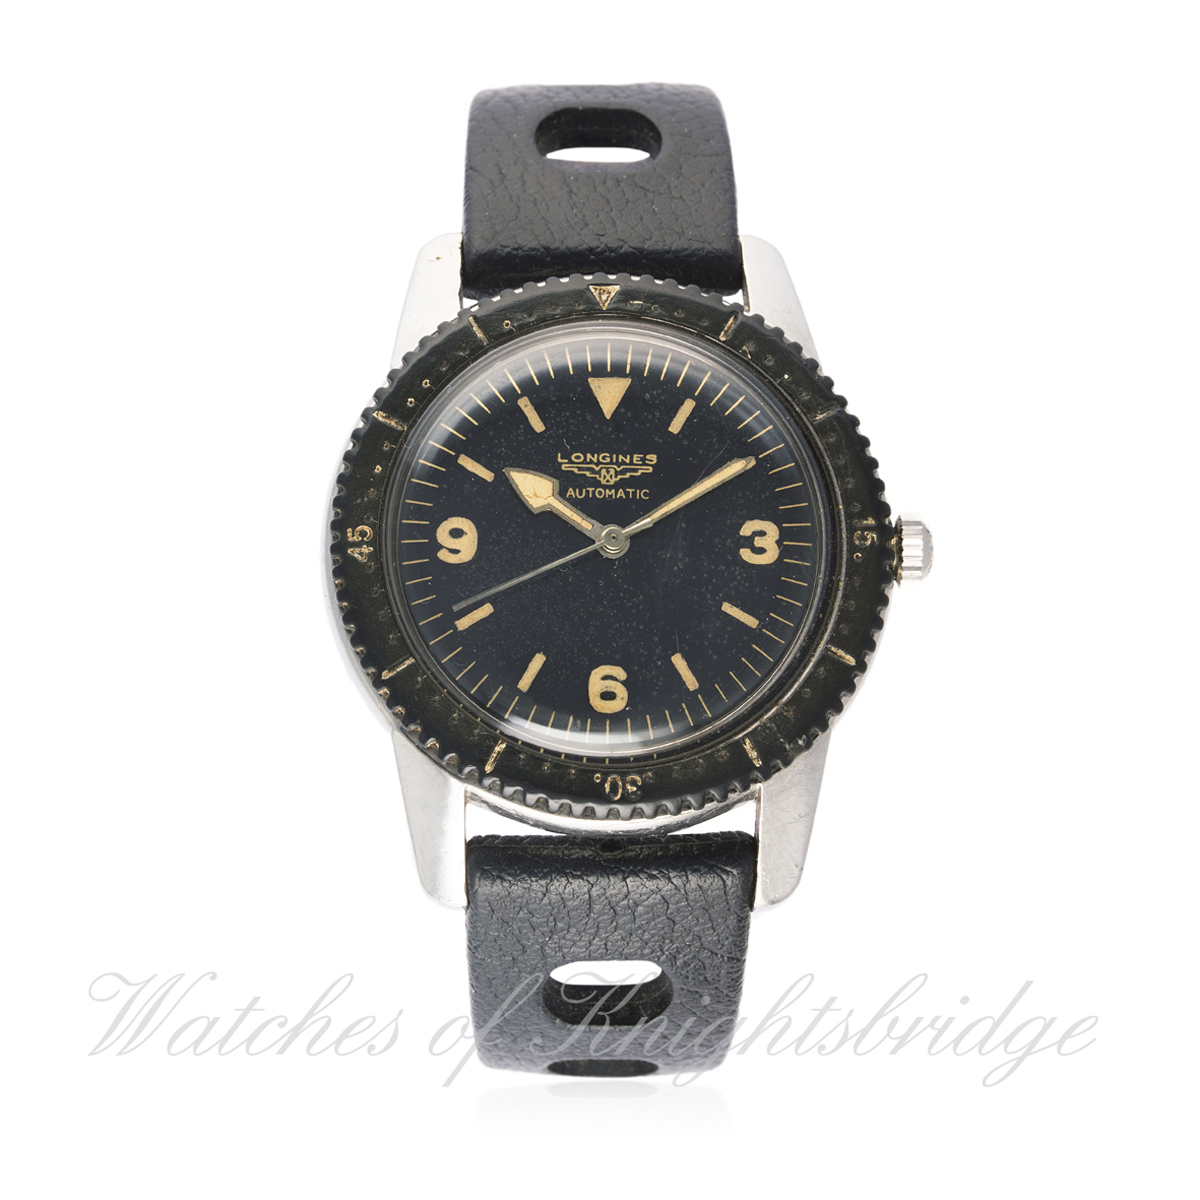 Lot 199 - A RARE GENTLEMAN'S STAINLESS STEEL LONGINES NAUTILUS SKIN DIVER WRIST WATCH CIRCA 1957, WITH